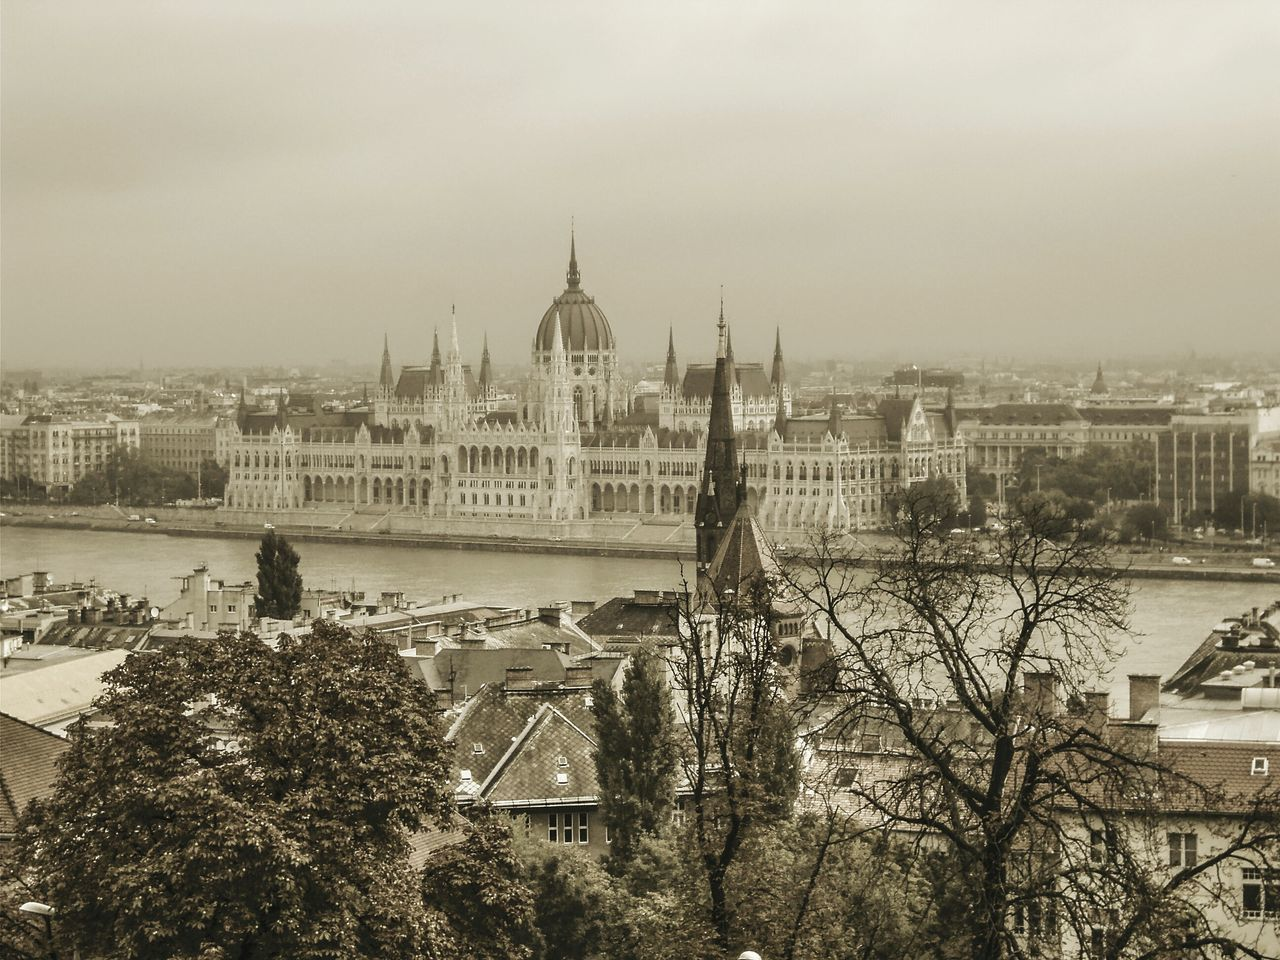 Hungarian Parliament Building and river against sky in city